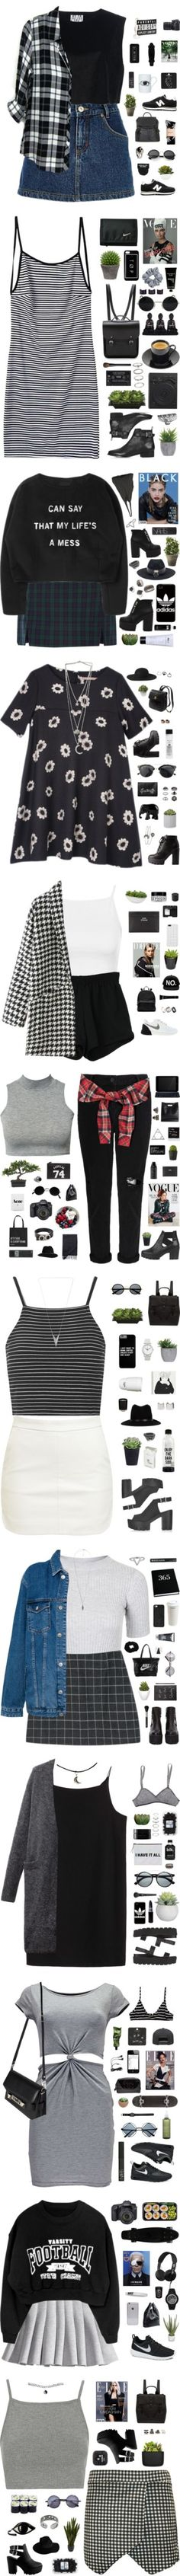 August by amy-lopezx on Polyvore featuring moda, River Island, New Balance, Ava Catherside, Street Level, Nikon, HUF, Topshop, LG and Retrò